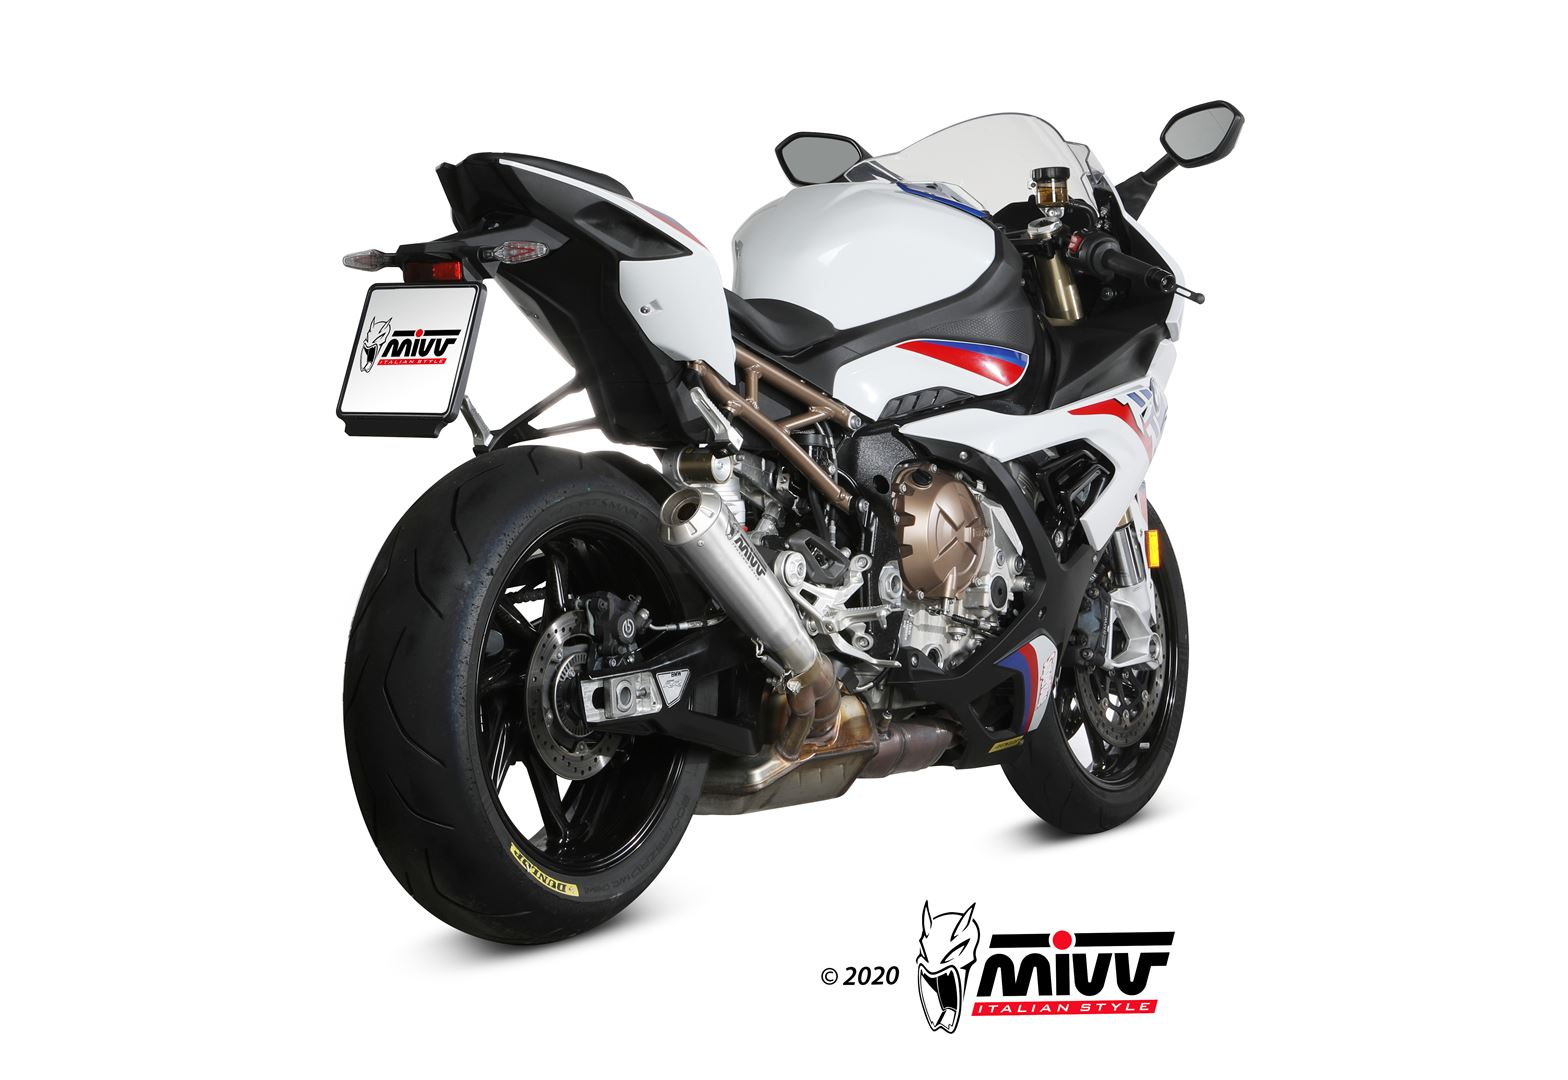 BMW_S1000RR_2020_73B036LC4T_02